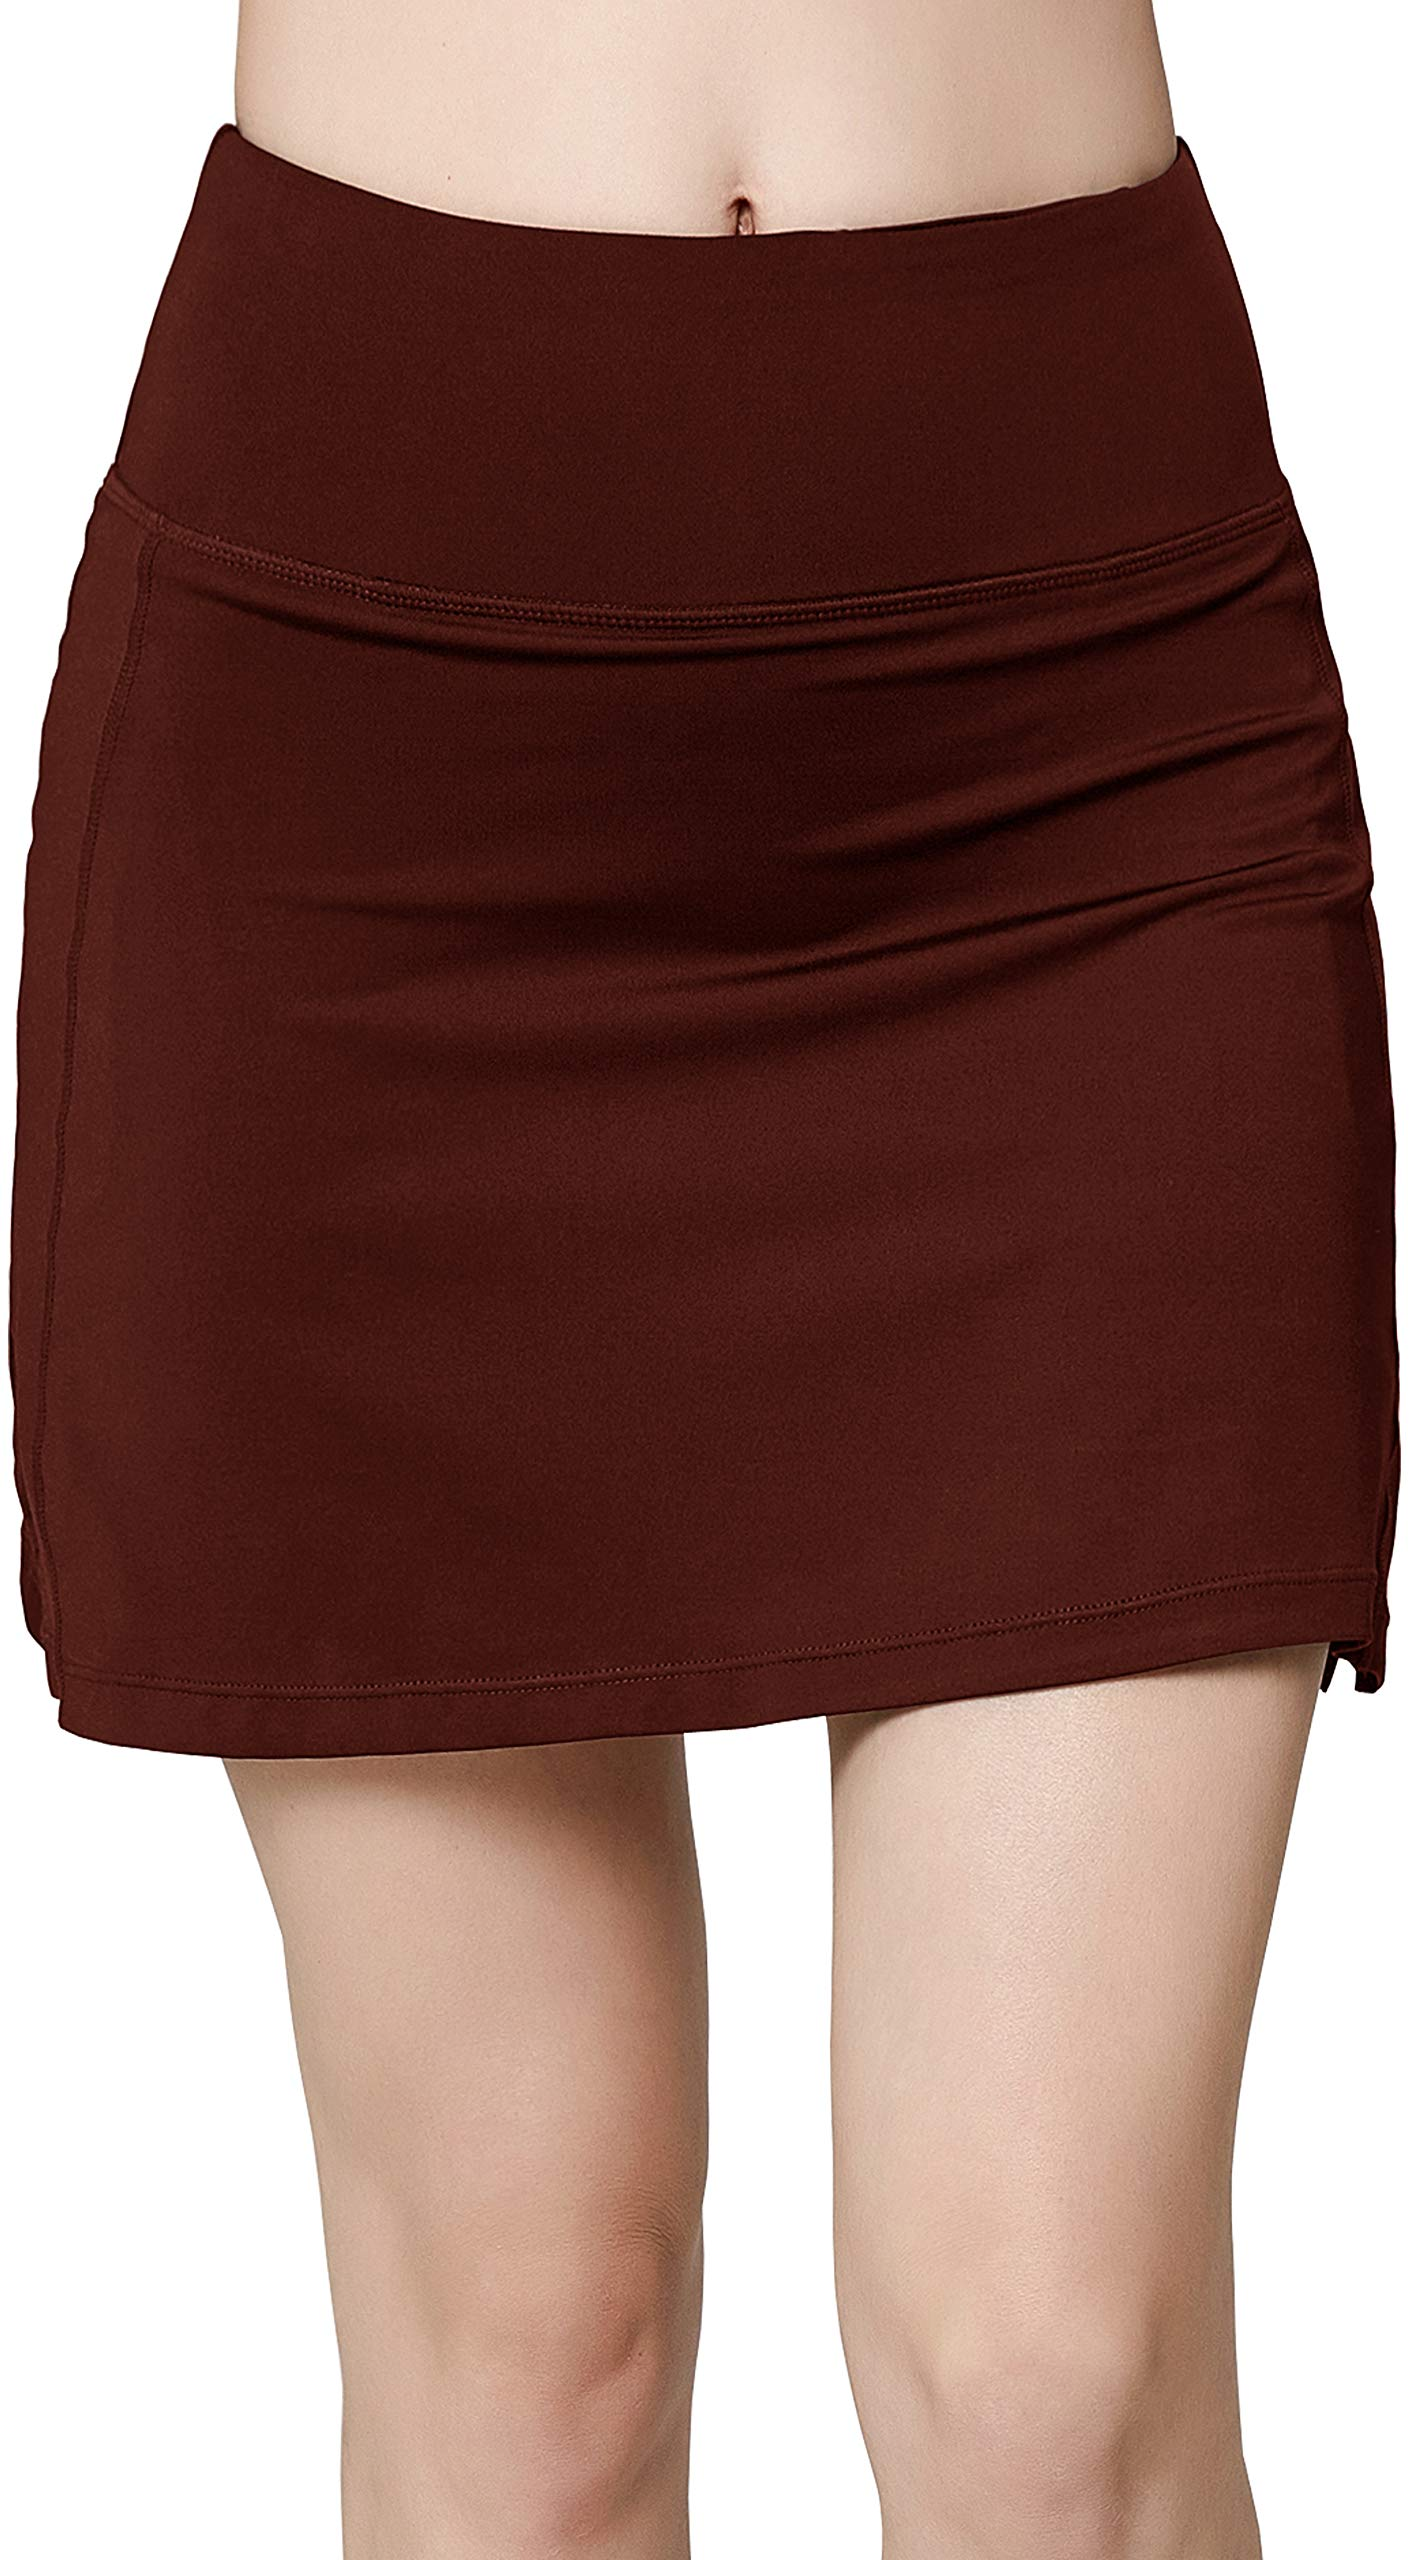 Women's Active Athletic Skirt Sports Golf Tennis Running Pockets Skort Brown L by Oalka